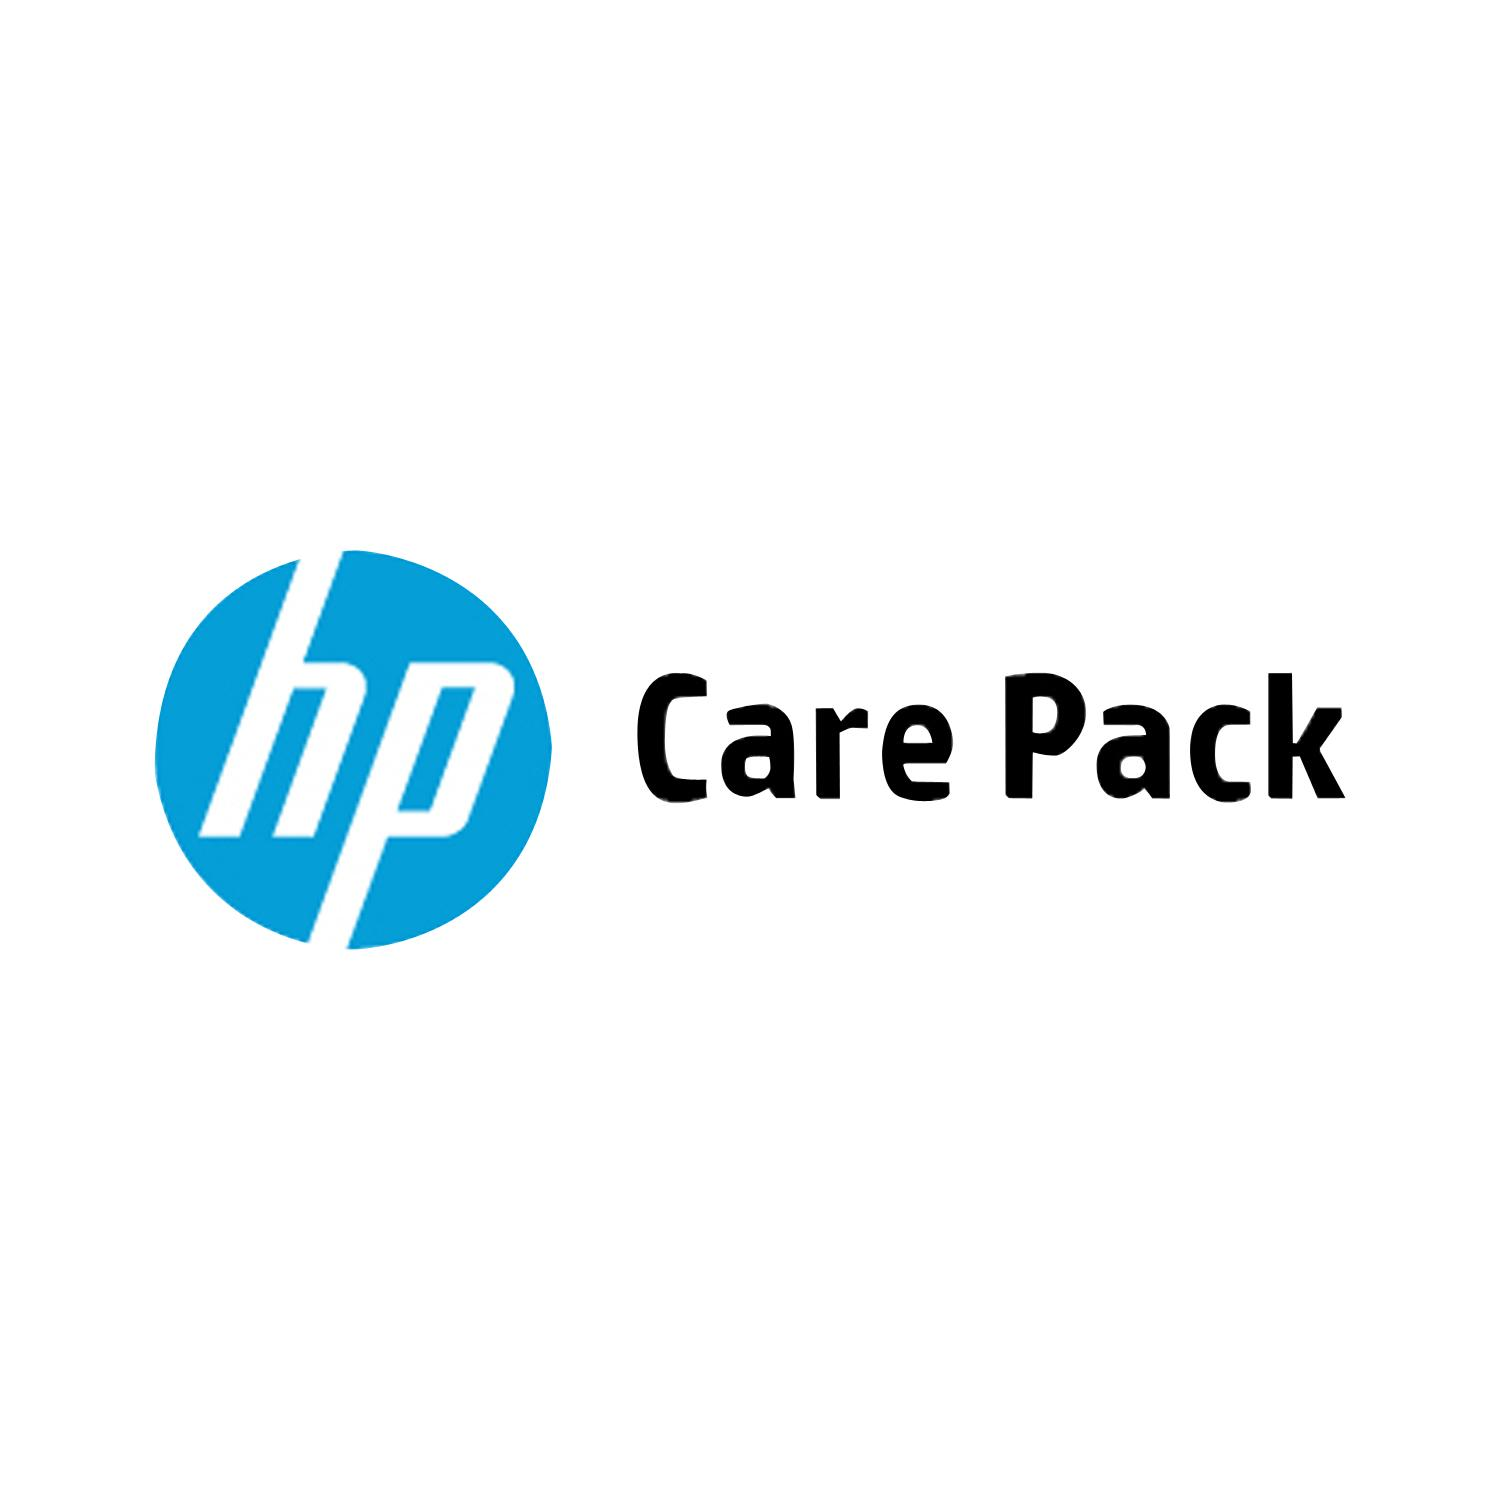 HP 5 year Next Business Day Onsite plus Defective Media